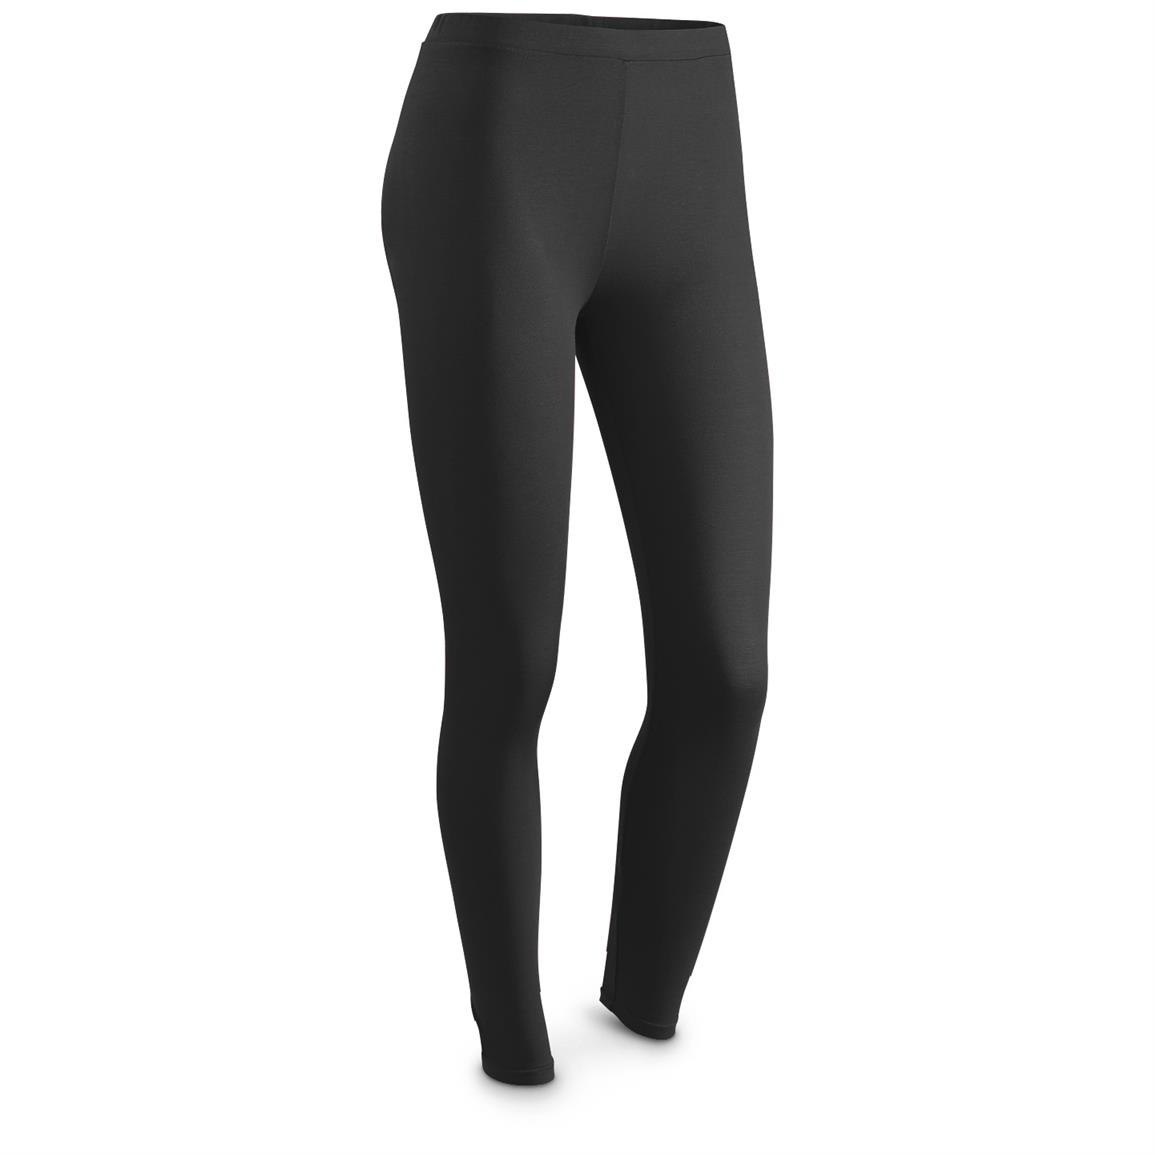 Weatherproof 32 Degrees HEAT Women's Base Layer Bottoms, Black